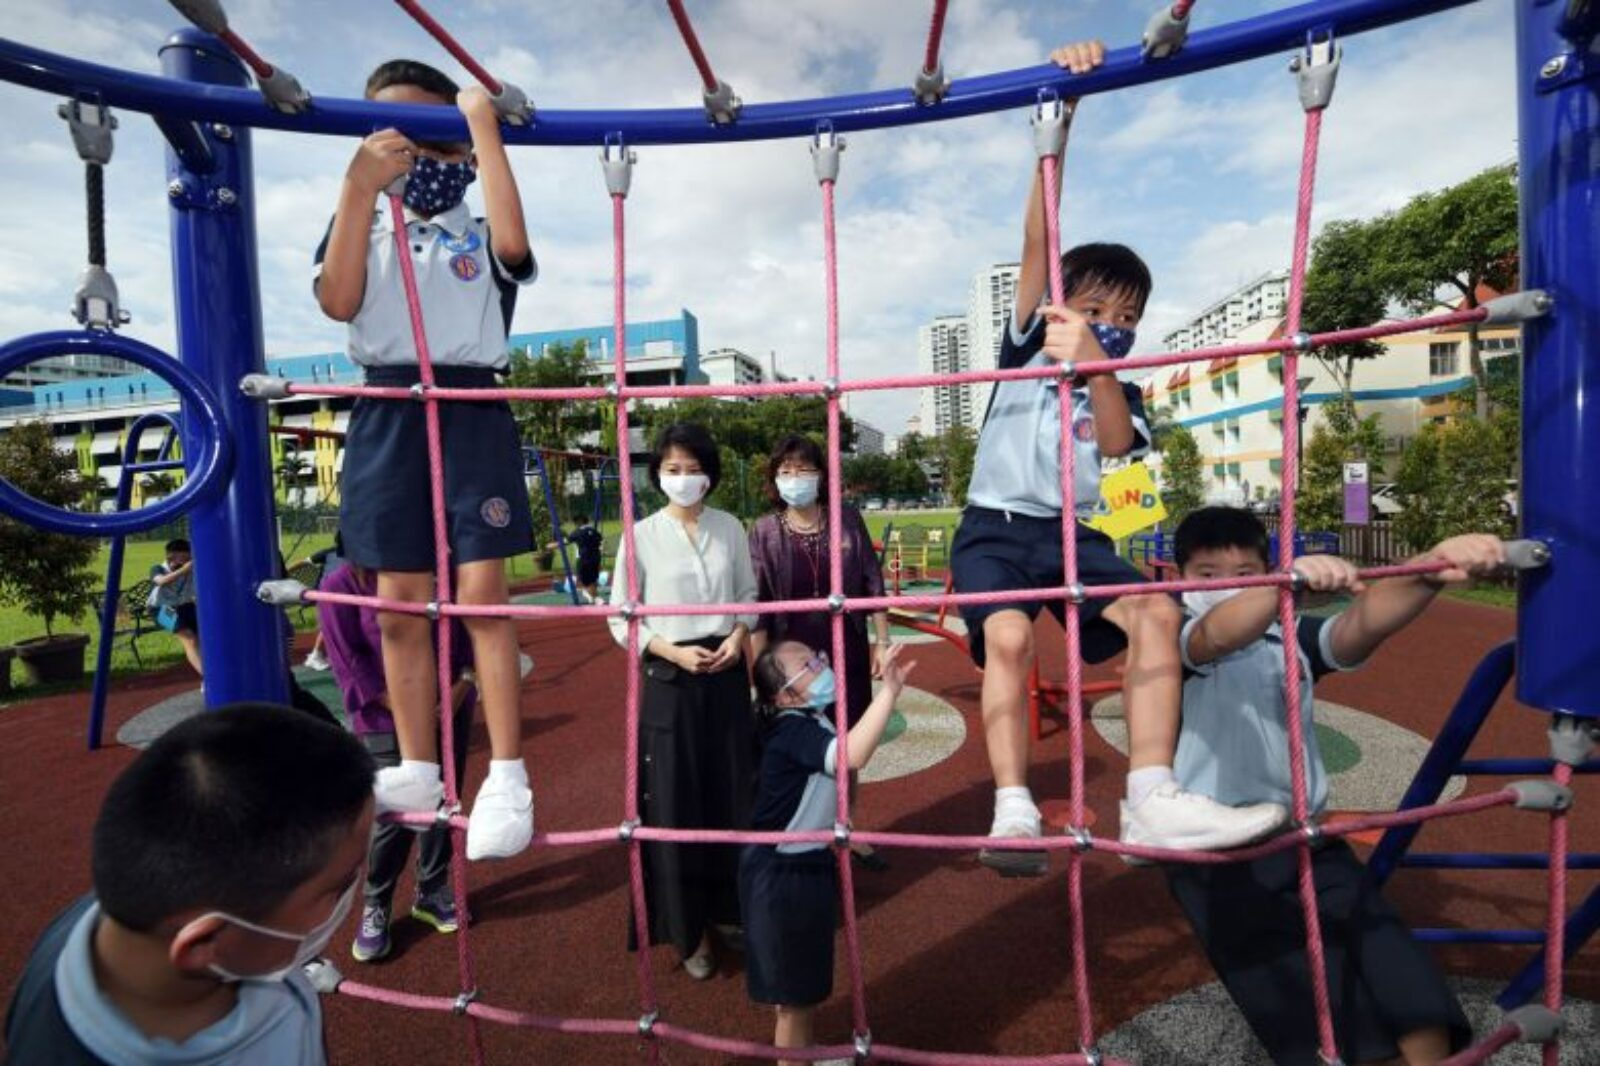 School Kids Playing at Playground - Joint campus for 2 special ed schools